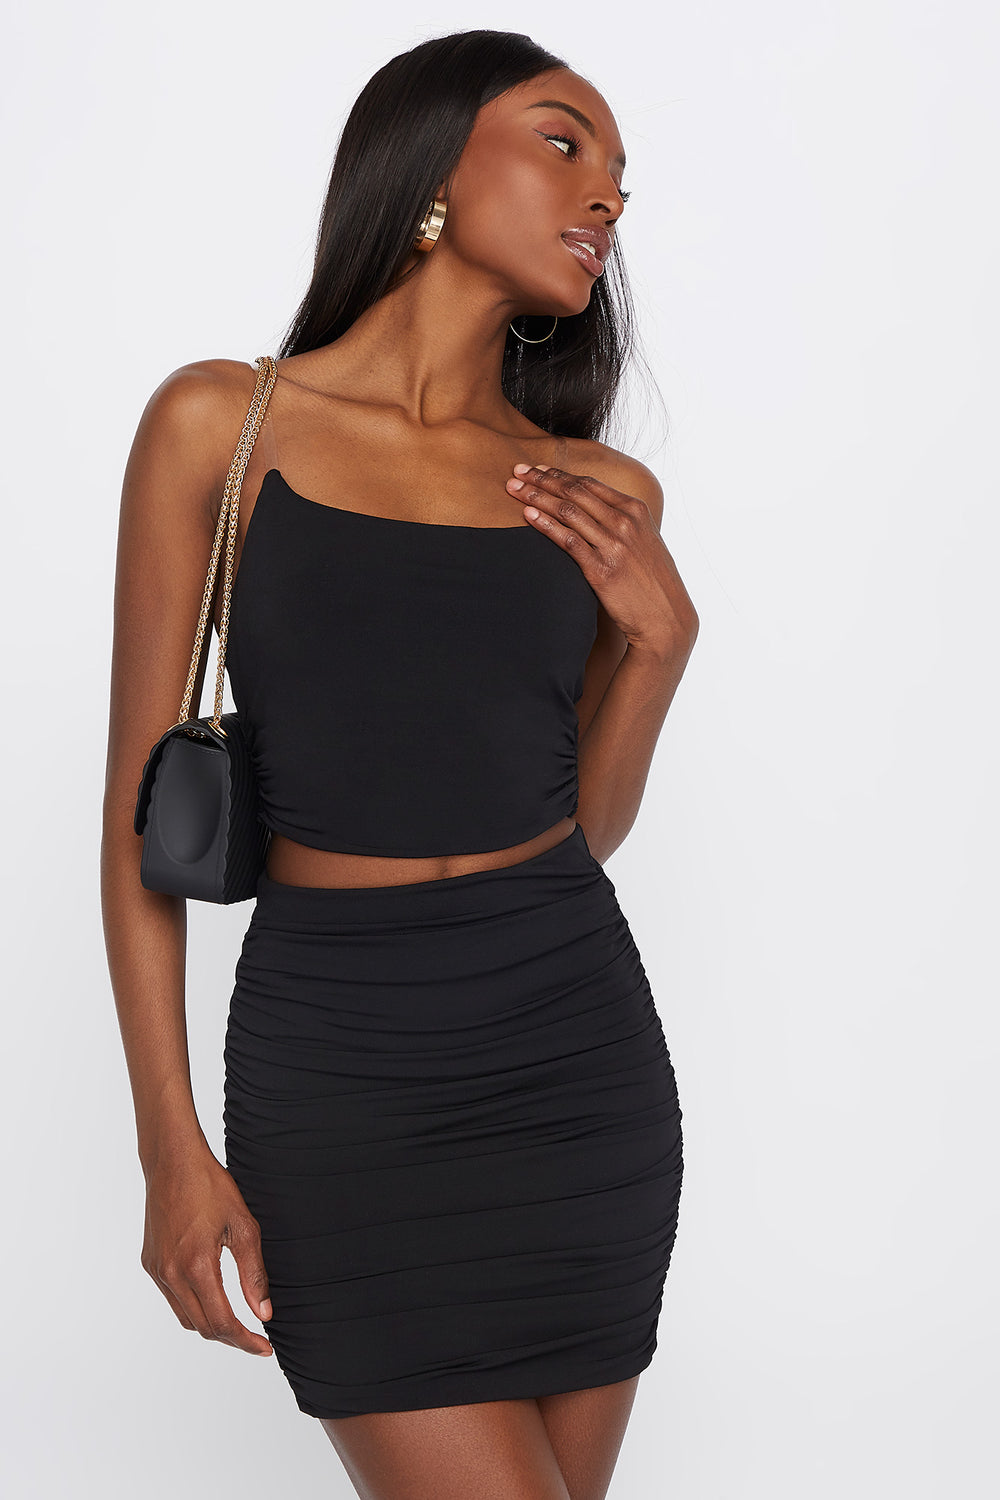 Clear Strap Scoop Neck Cropped Top Black